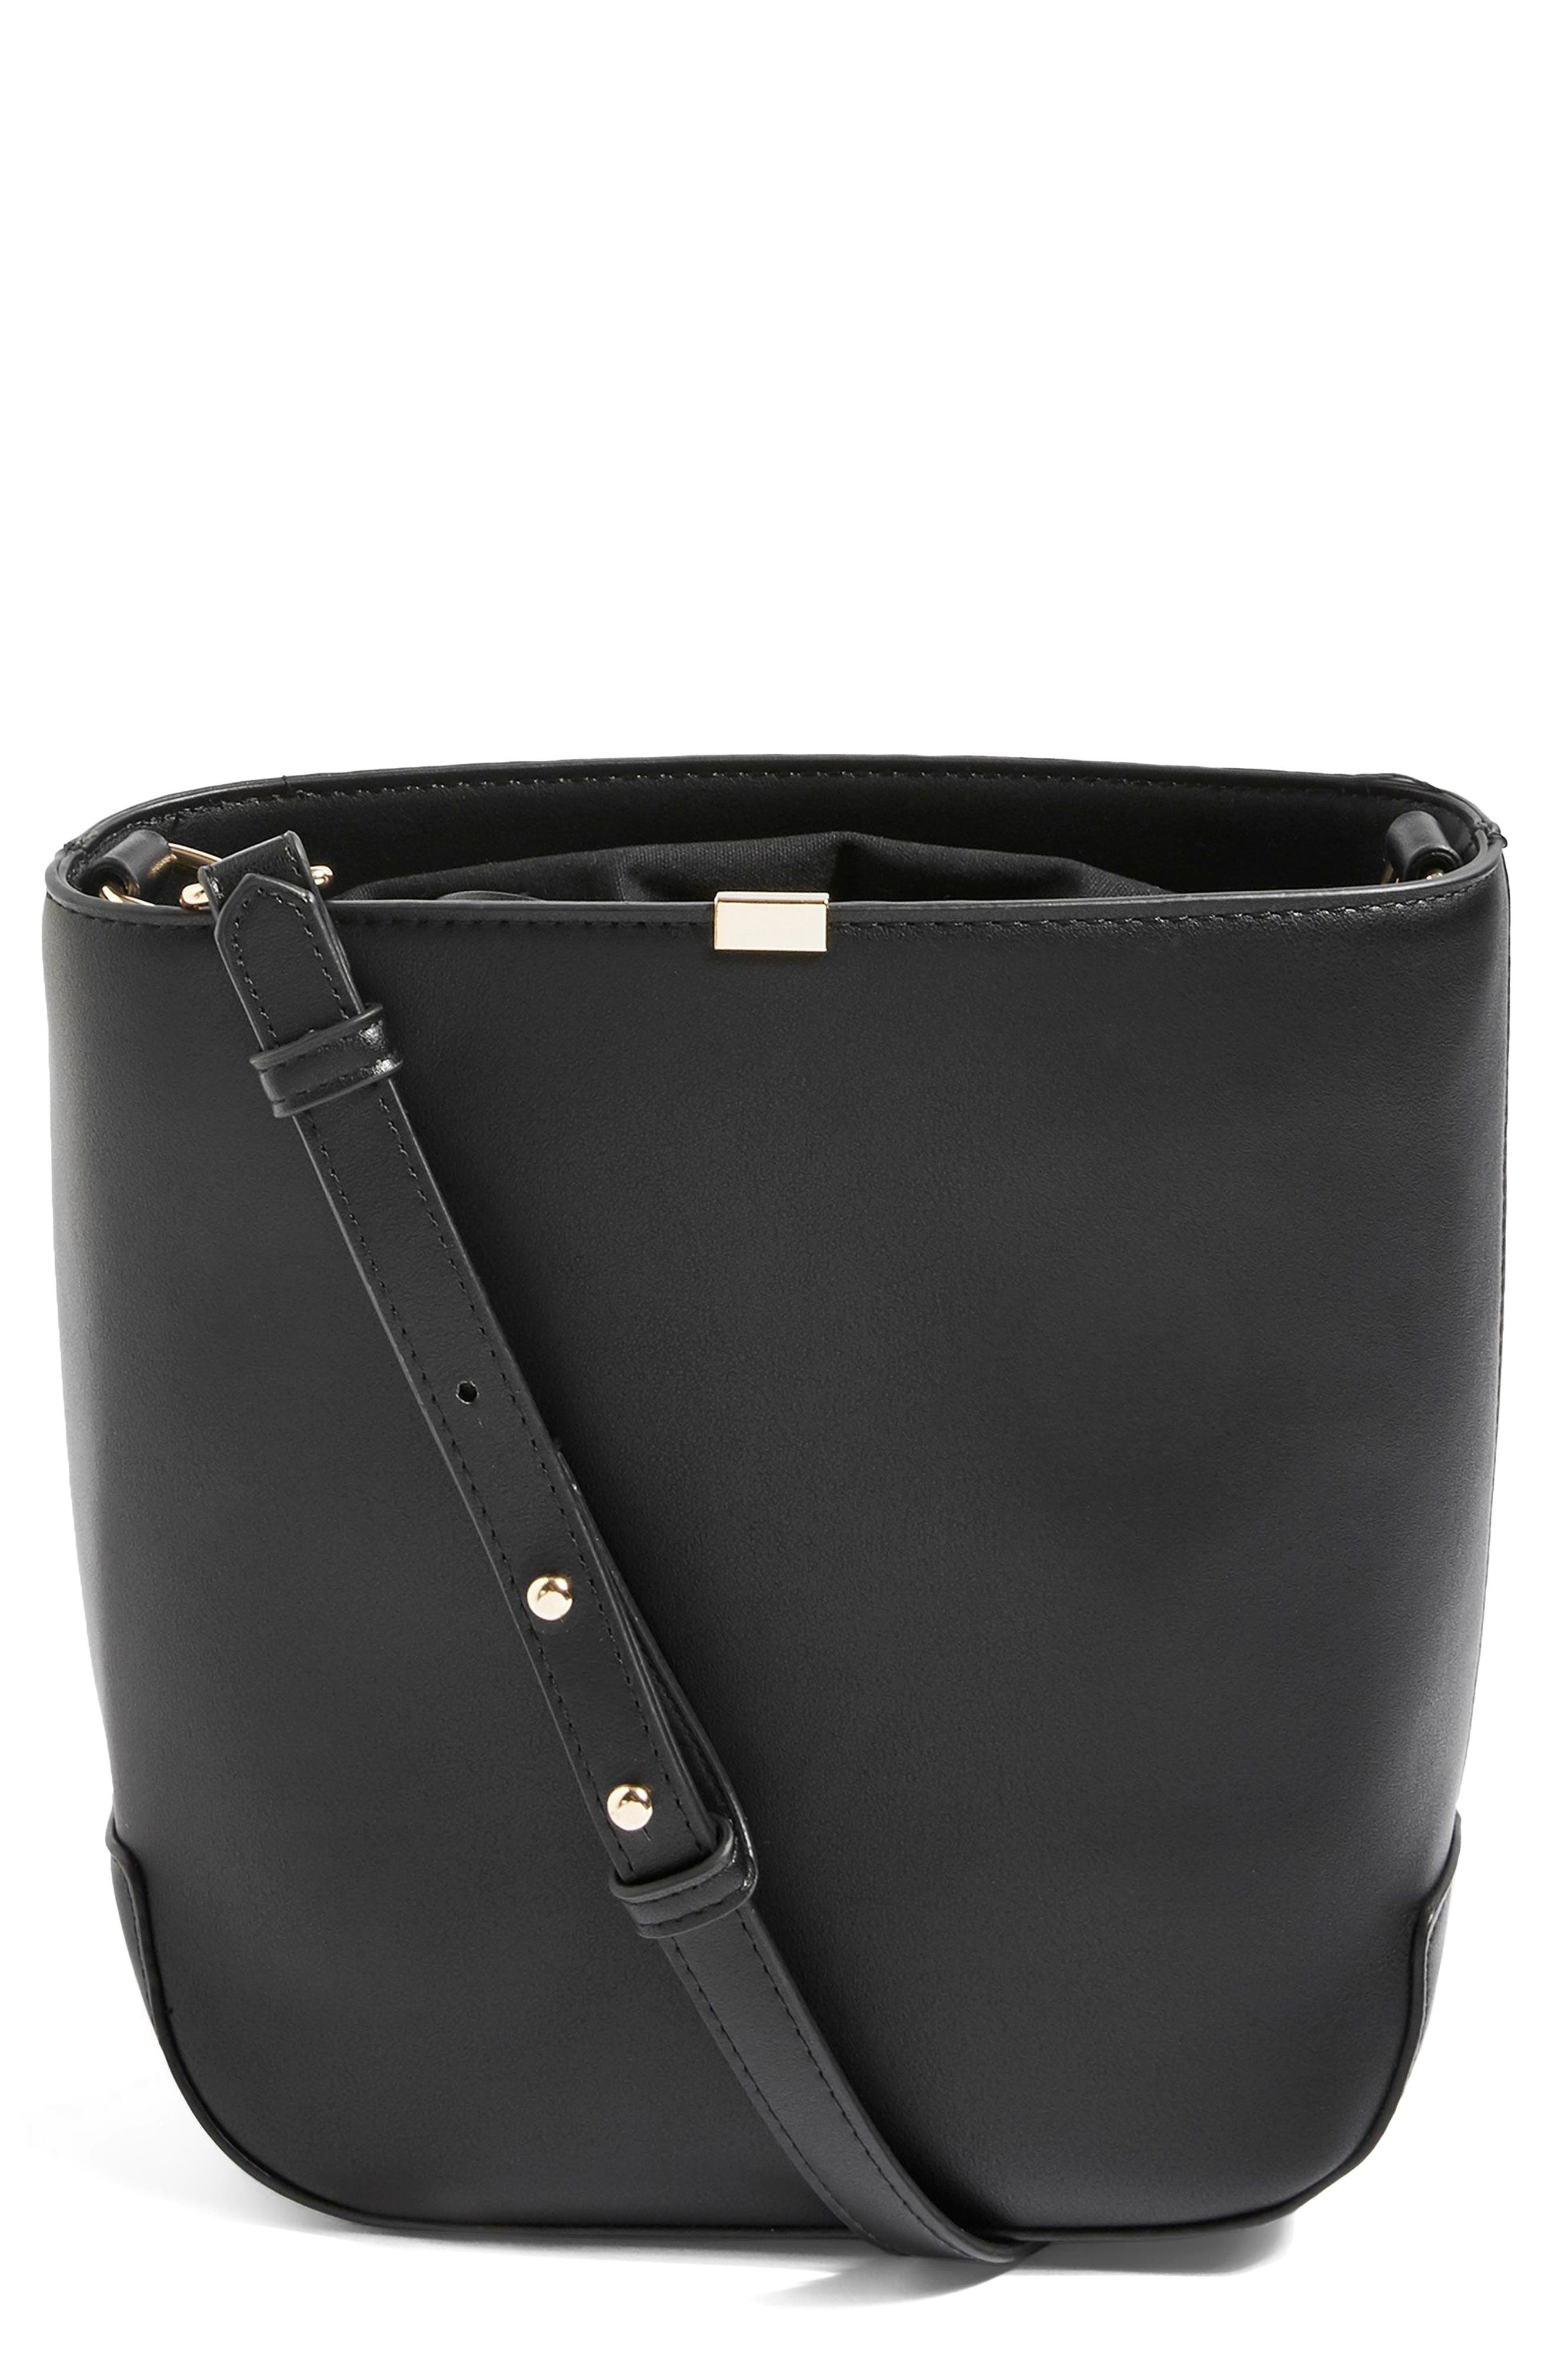 Topshop Romy Bucket Shoulder Handbag